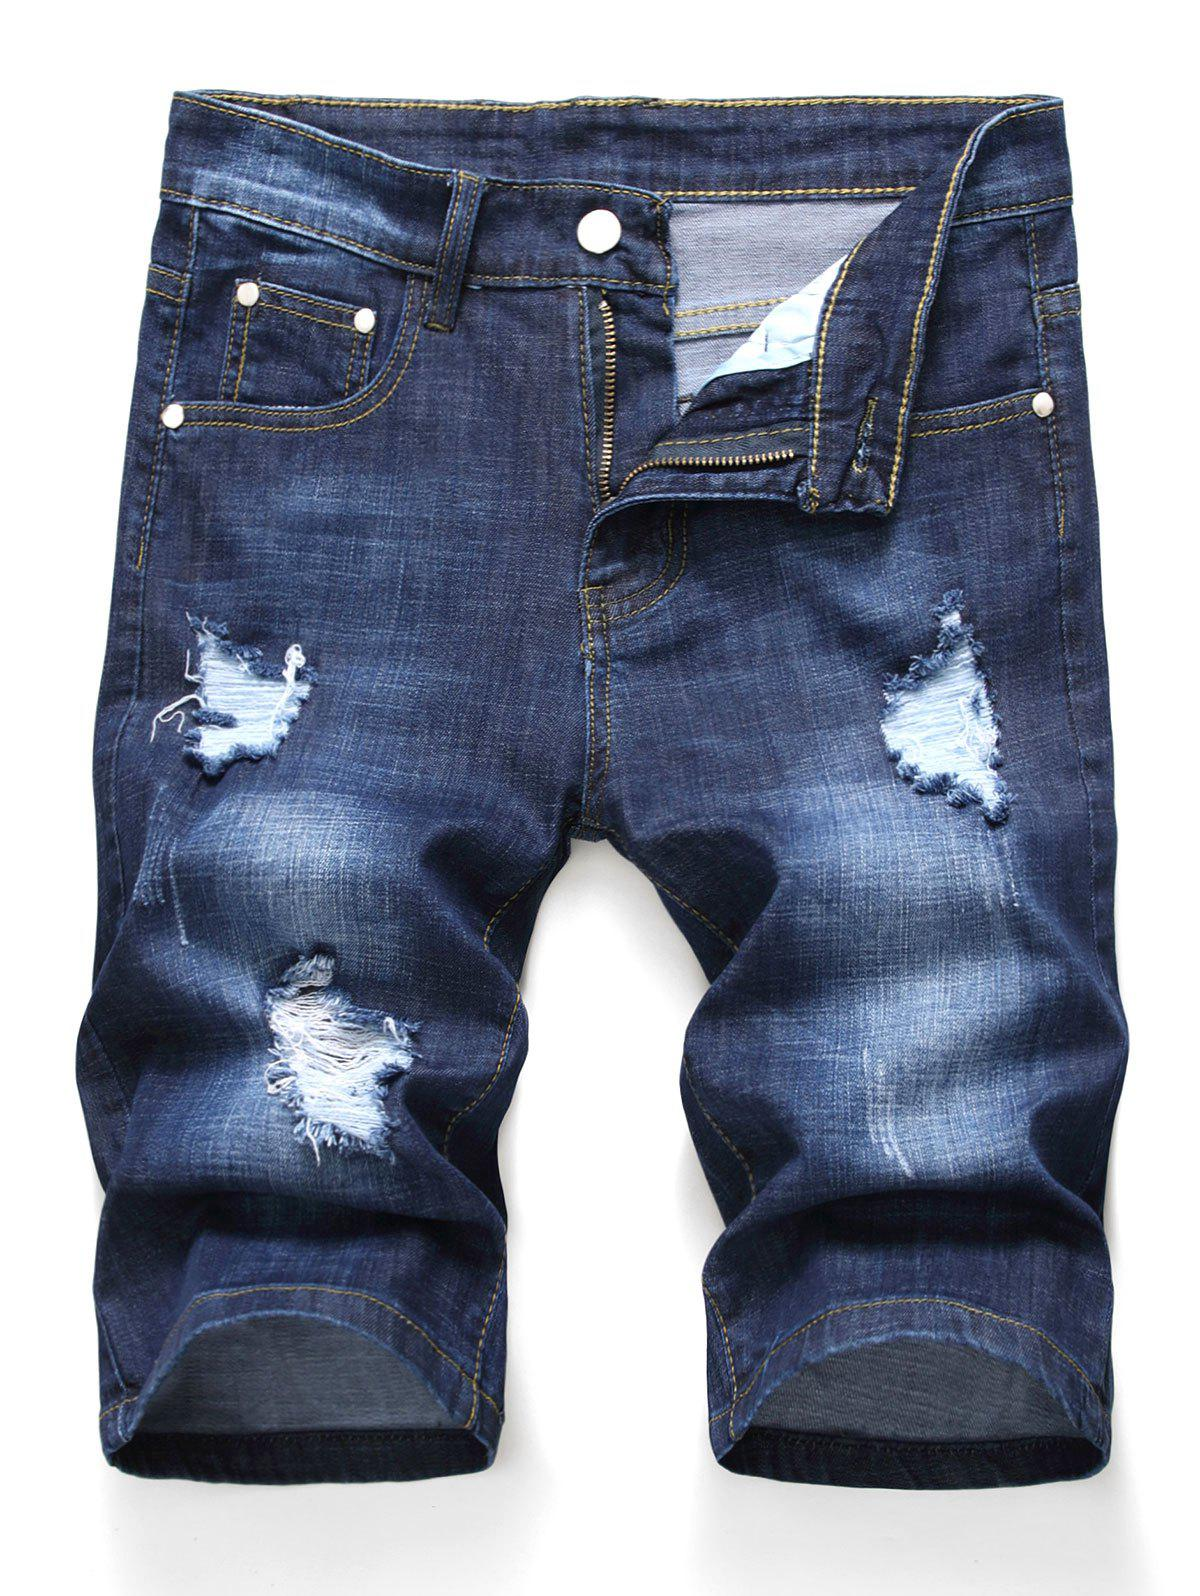 Zipper Fly Design Ripped Denim Shorts - DENIM DARK BLUE 36